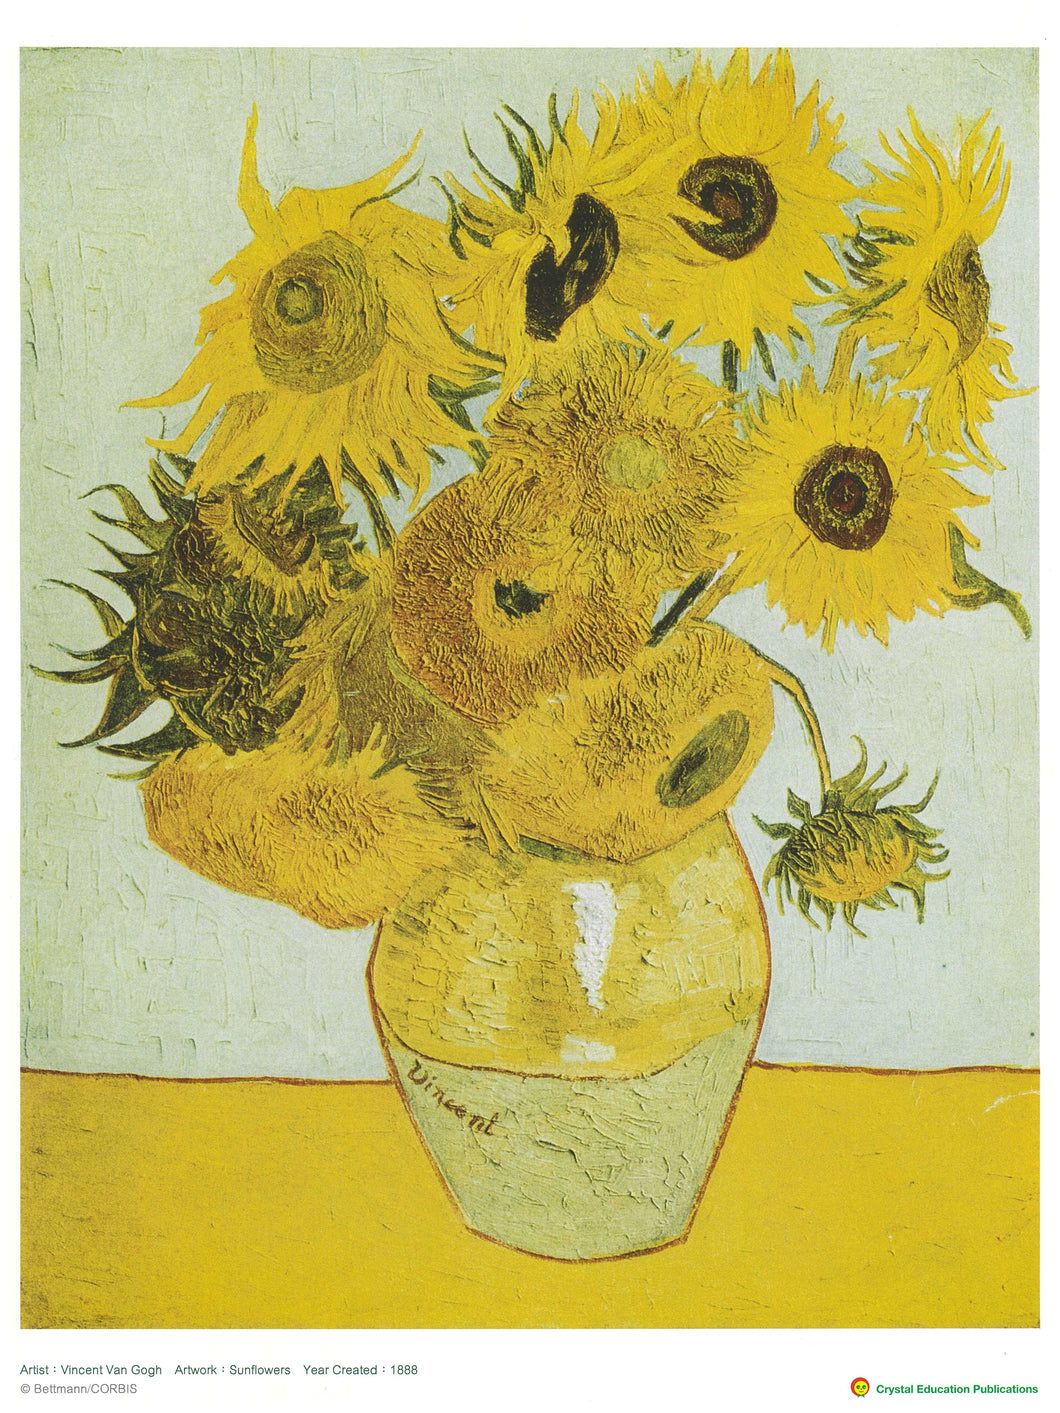 Sunflowers (Vincent Van Gogh, 1888) 向日葵